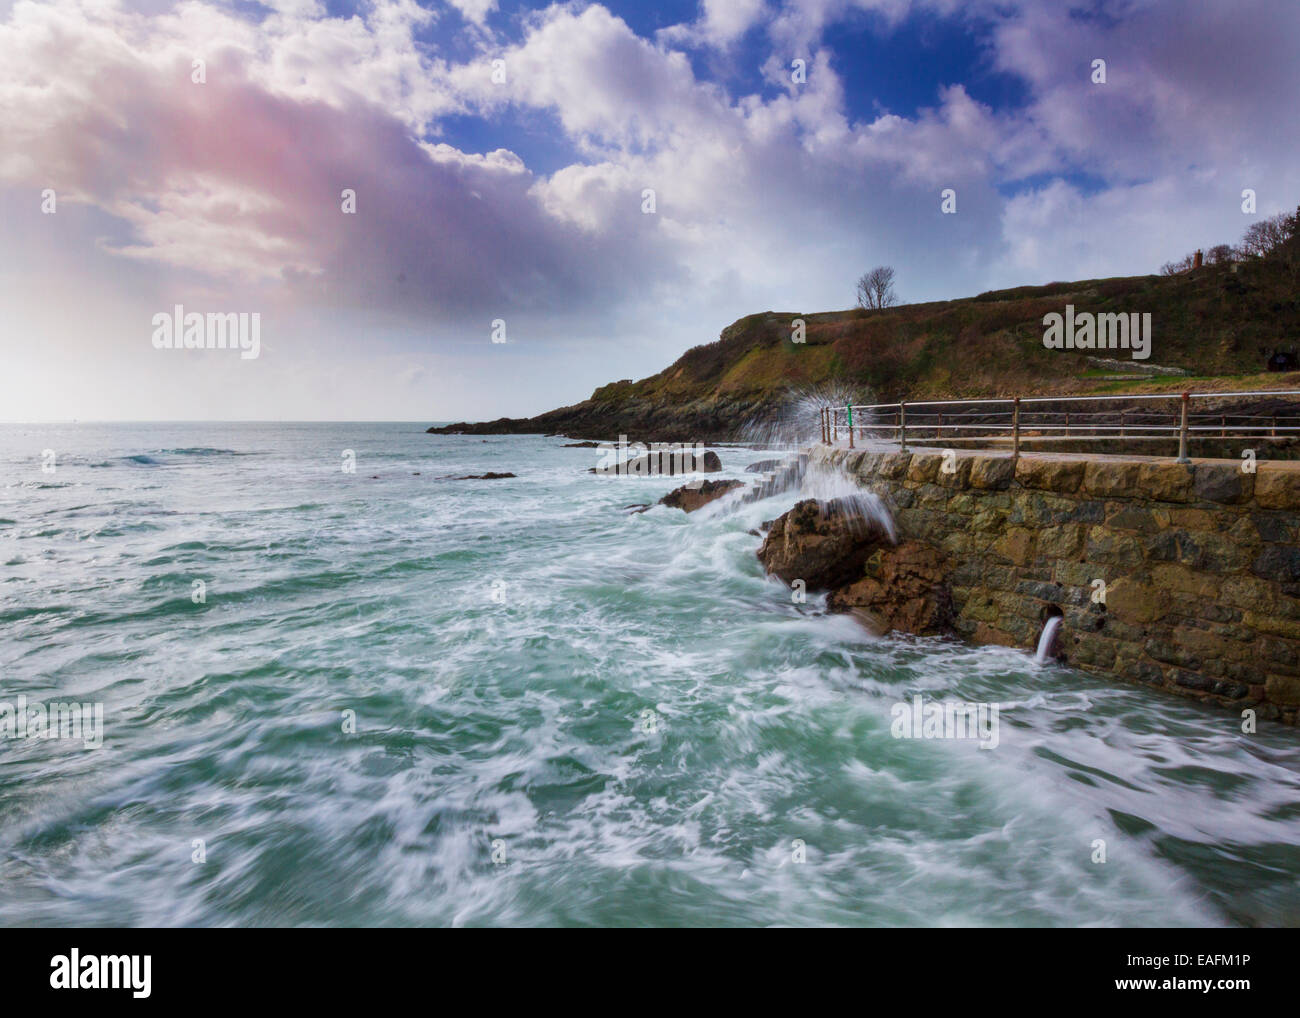 Coastal scene on Guernsey  Channel Islands UK - Stock Image